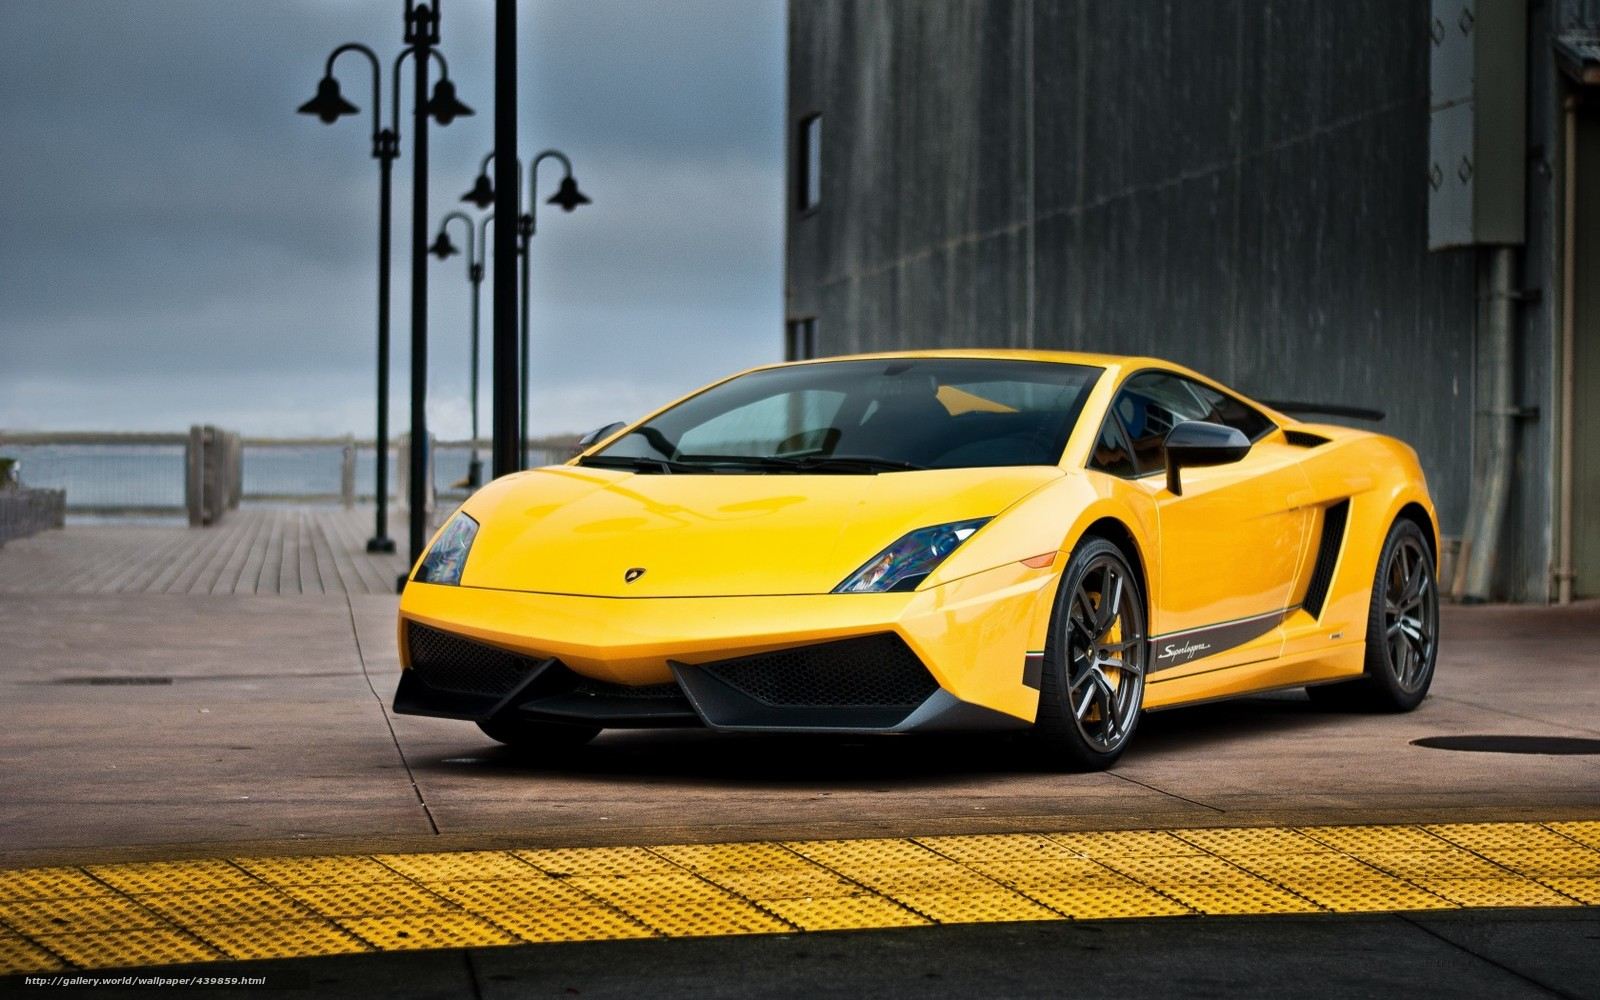 Bruce Lee Traini...Yellow Lamborghini Gallardo Wallpaper